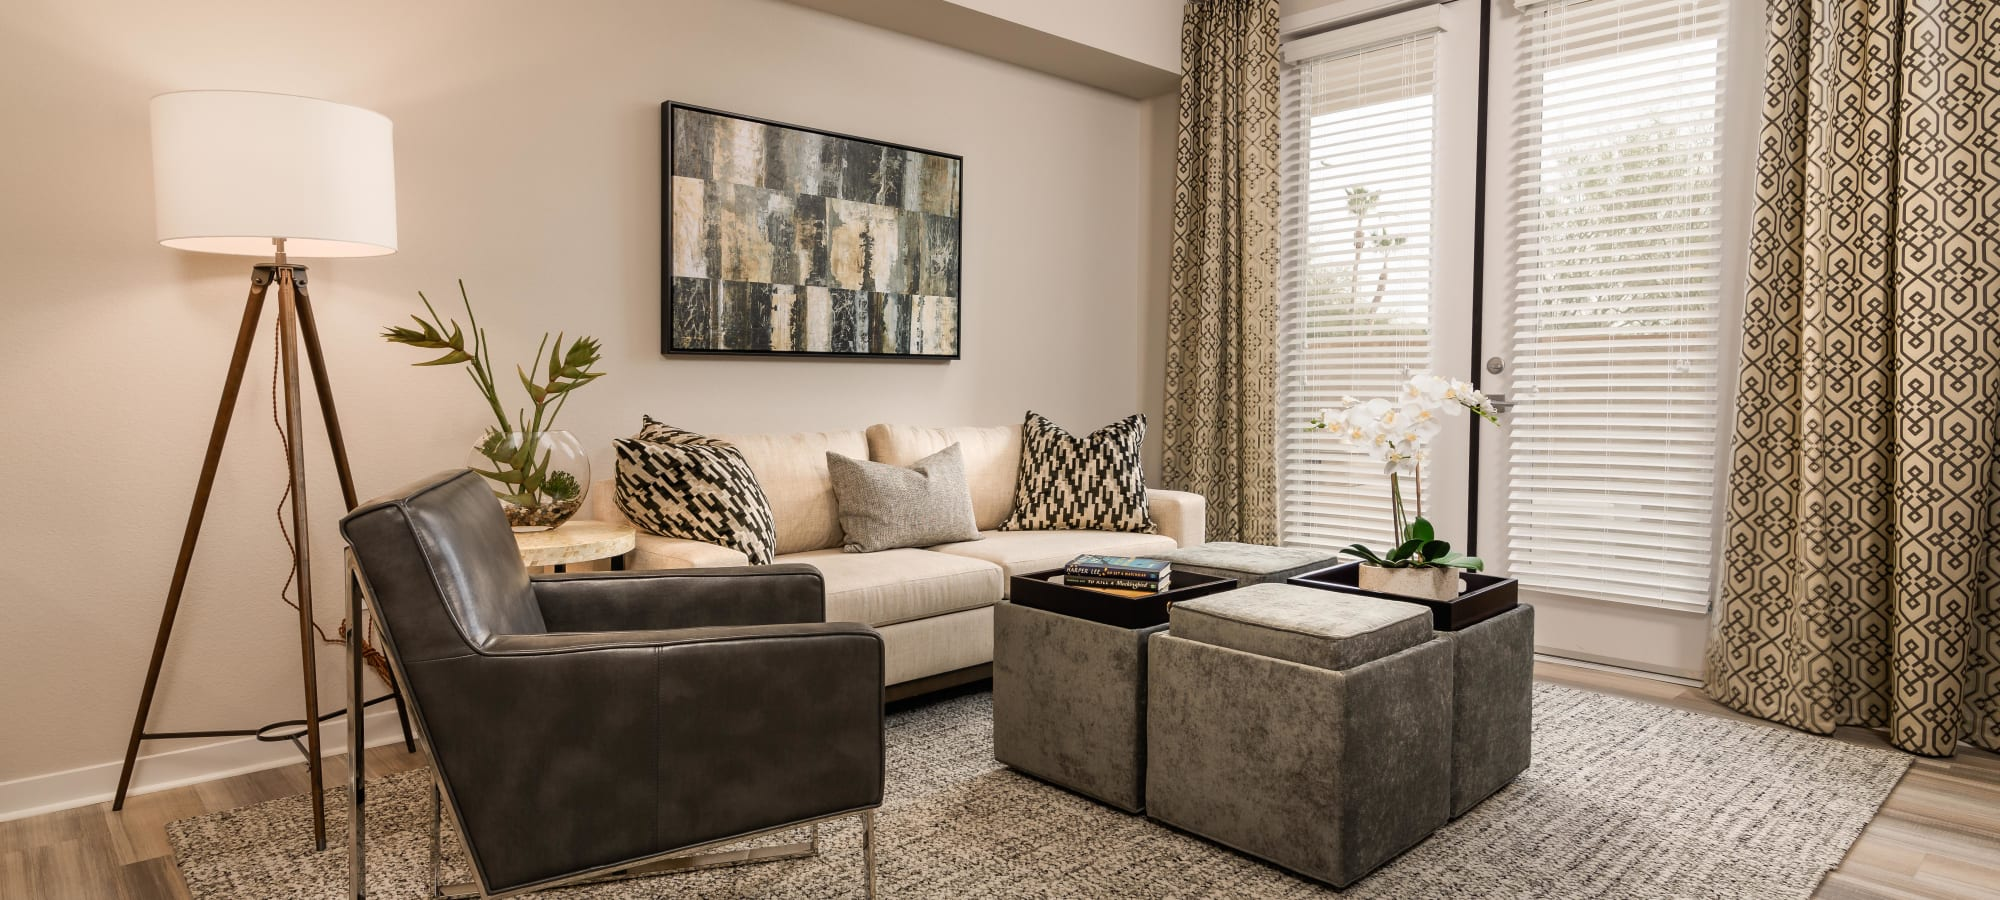 Spacious living room in model home at Morrison Chandler in Chandler, Arizona